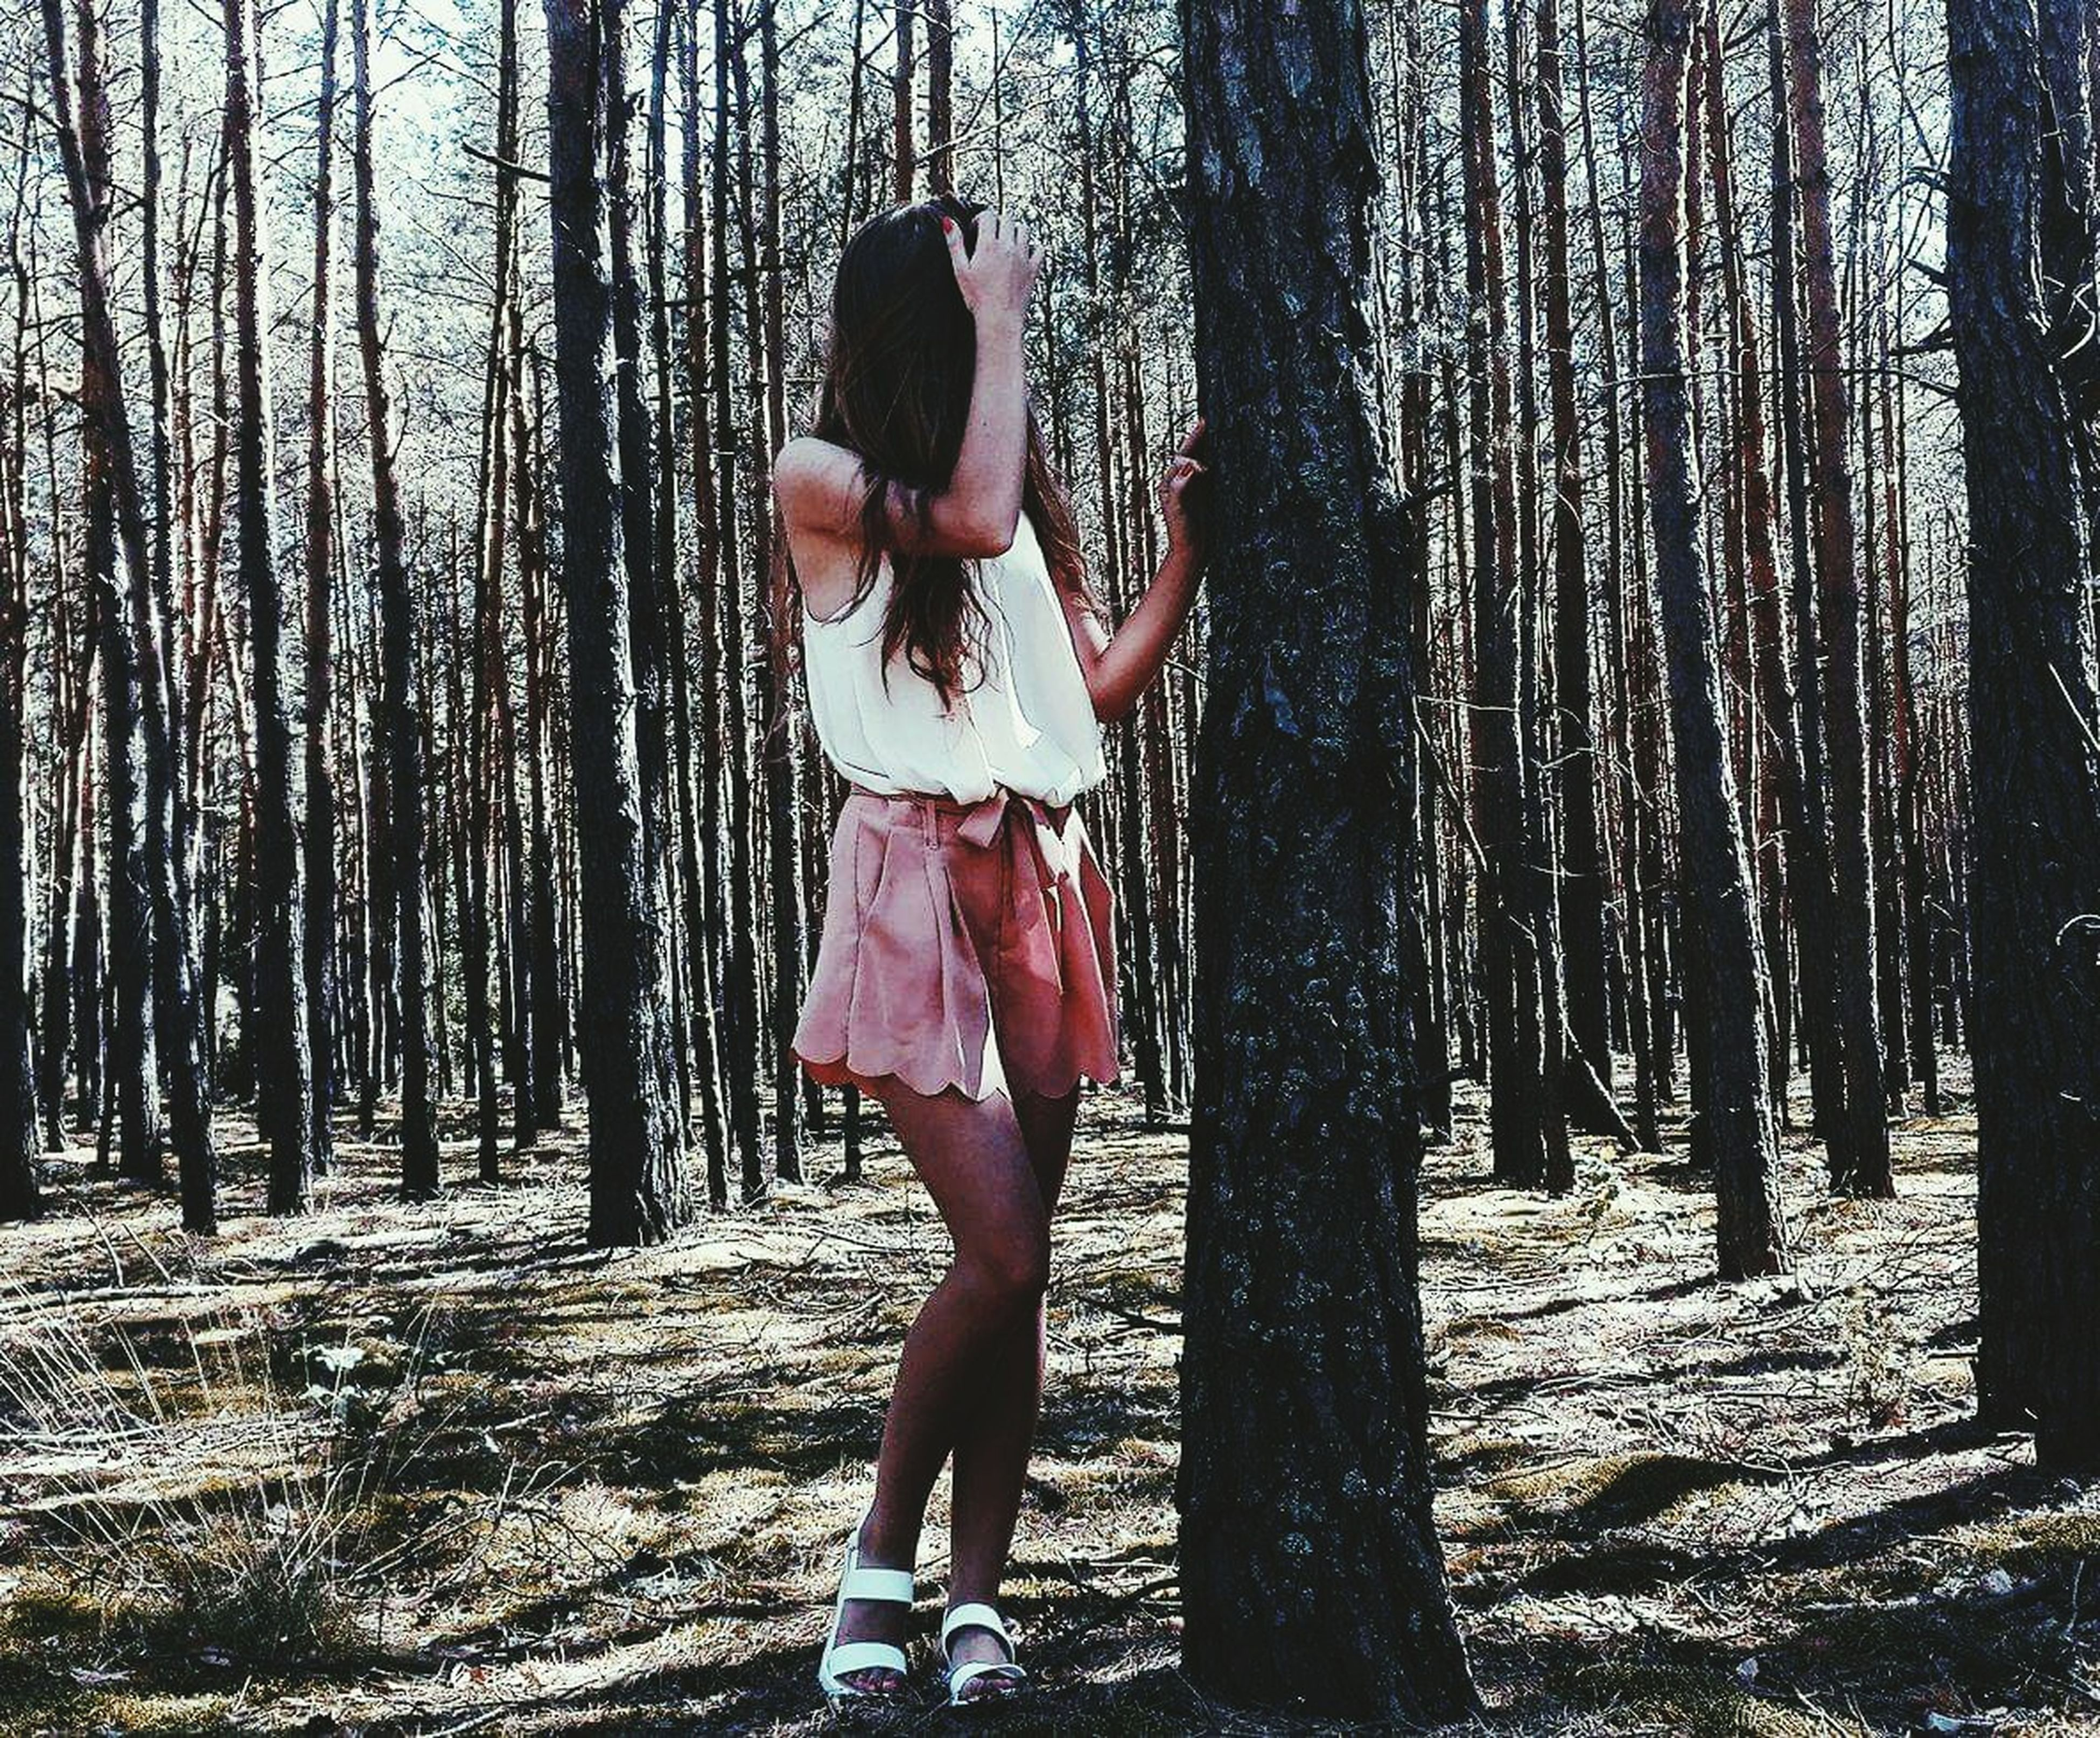 tree, lifestyles, leisure activity, tree trunk, forest, full length, casual clothing, woodland, nature, outdoors, day, tranquility, growth, tranquil scene, non-urban scene